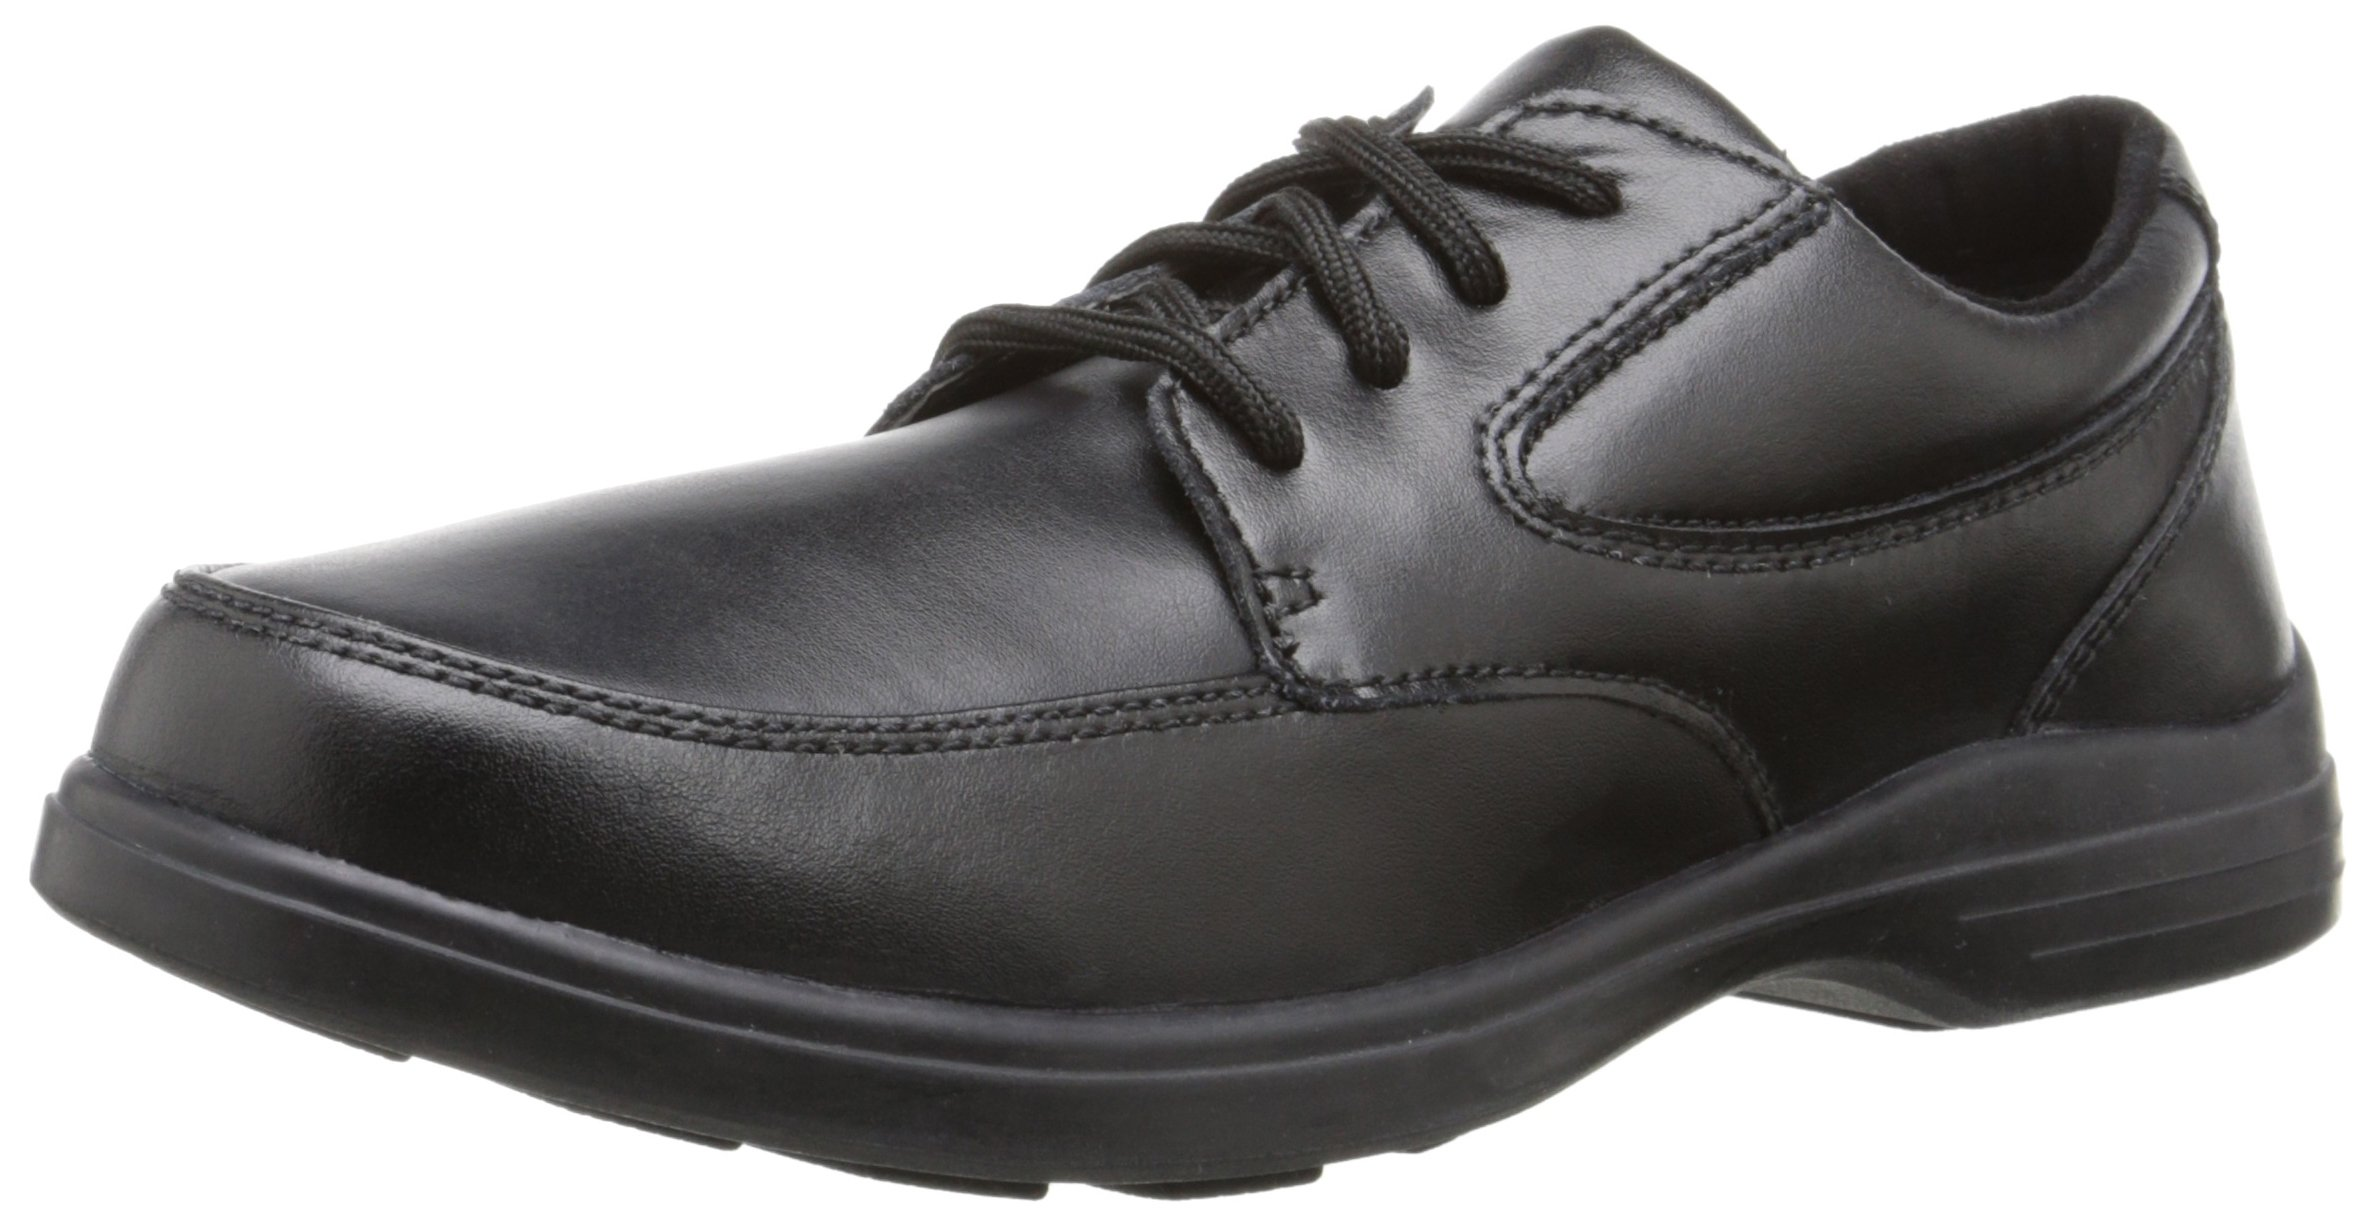 Hush Puppies Ty Oxford Uniform Dress Shoe (Toddler/Little Kid/Big Kid), Black, 7 M US Big Kid